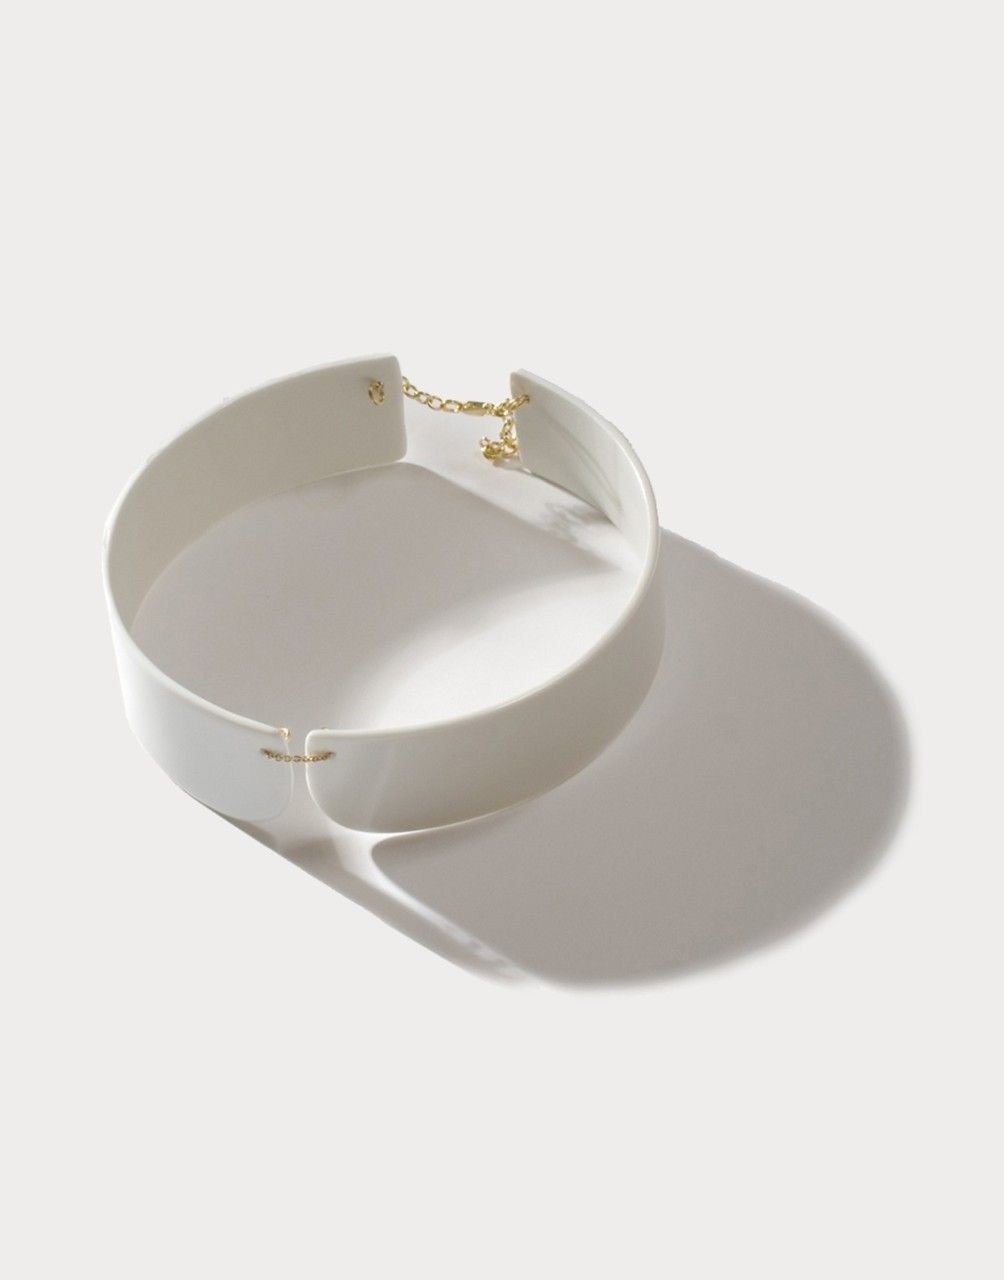 Porcelain collar from uncommon matters minimalist and modern design